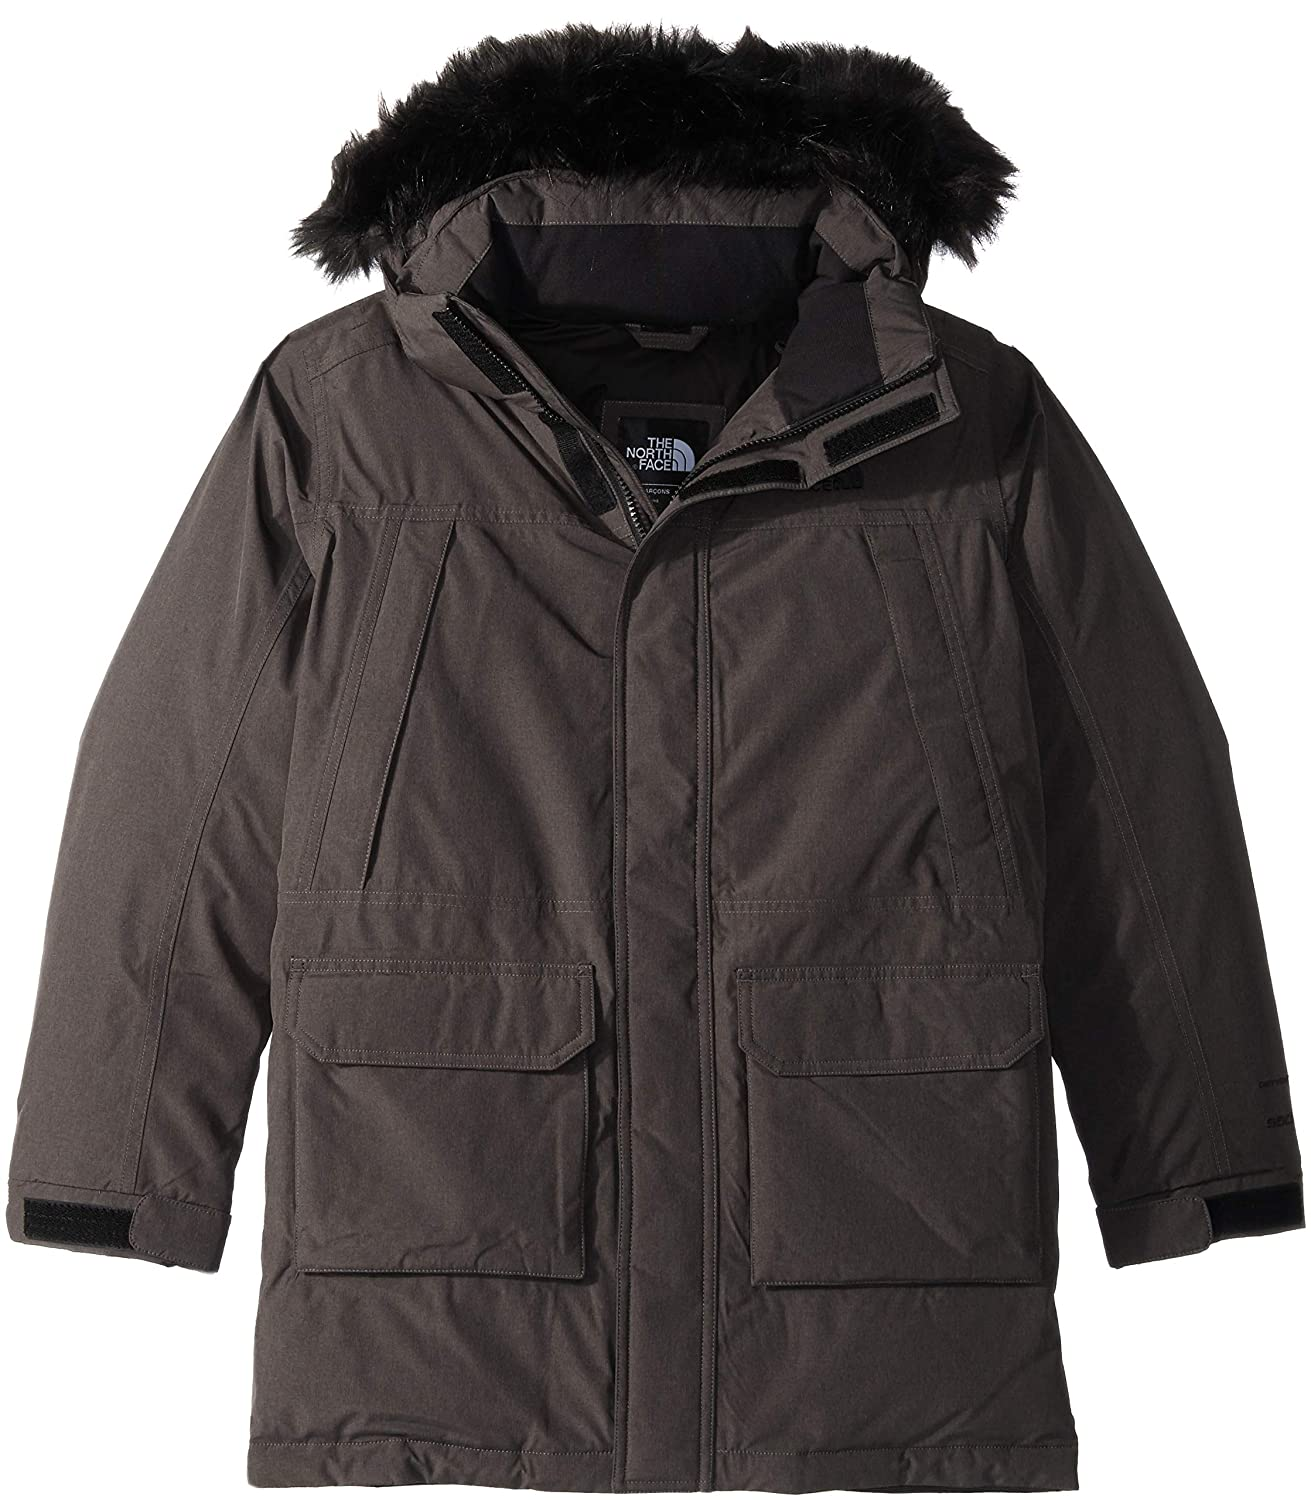 The North Face OUTERWEAR ボーイズ US サイズ: X-Large カラー: グレー